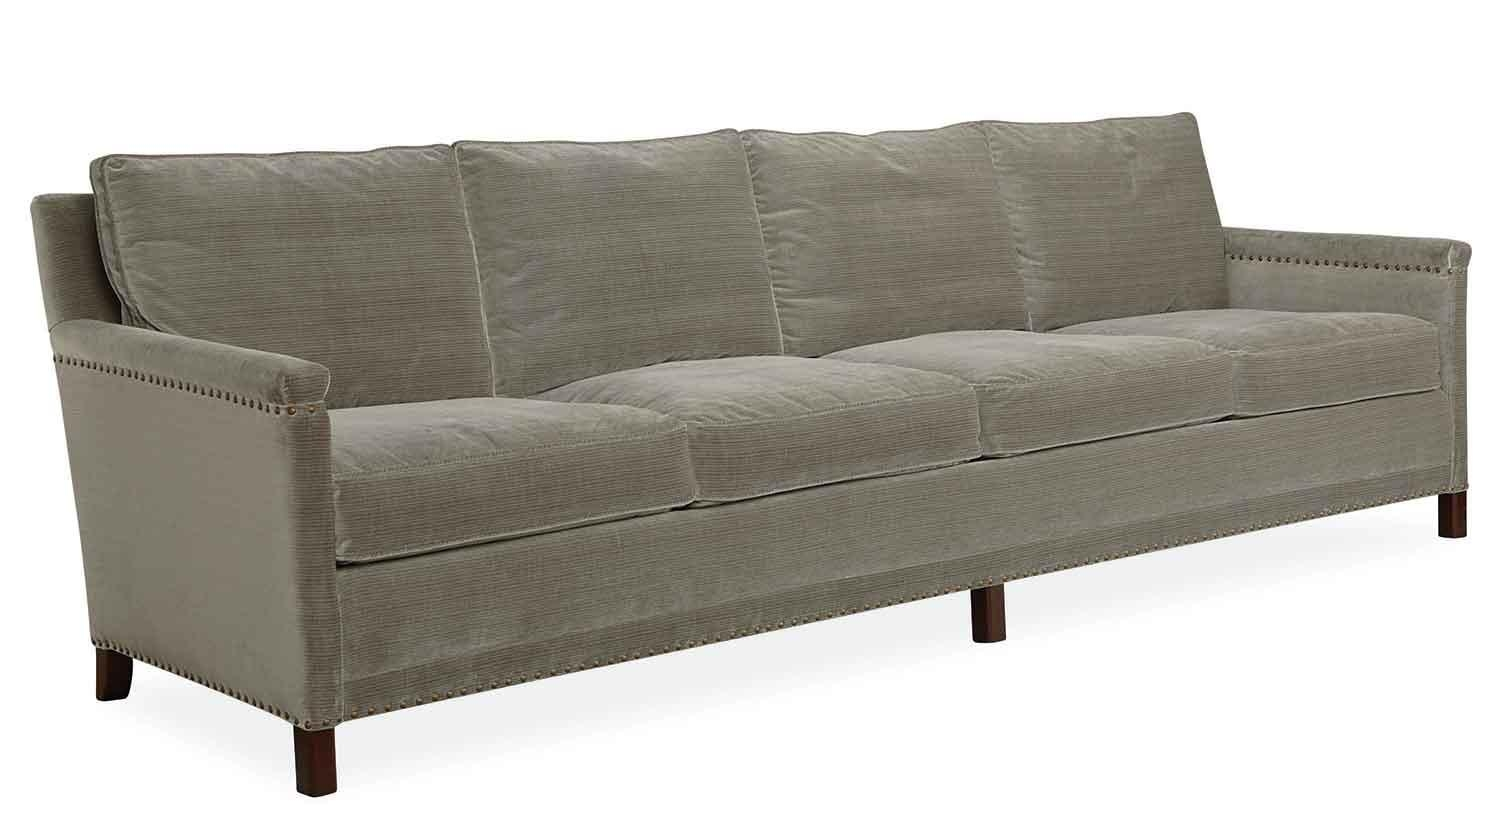 Circle Furniture – Paige 4 Seat Sofa | Sofas Acton | Circle Furniture Within Pier One Carmen Sofas (View 15 of 20)